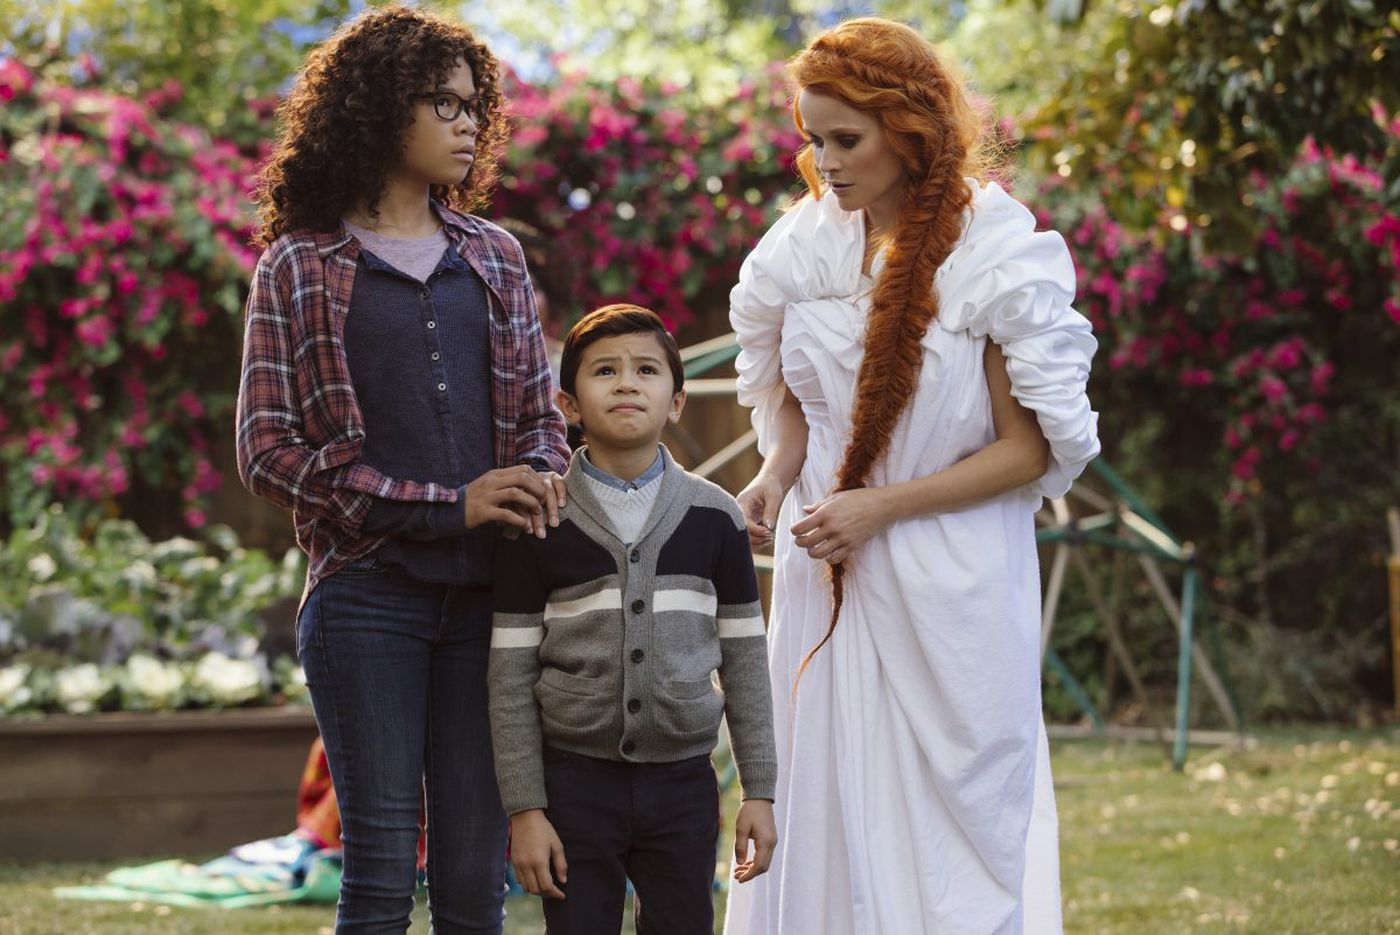 Ignore the critics: Take your children to see 'A Wrinkle in Time' | Elizabeth Wellington